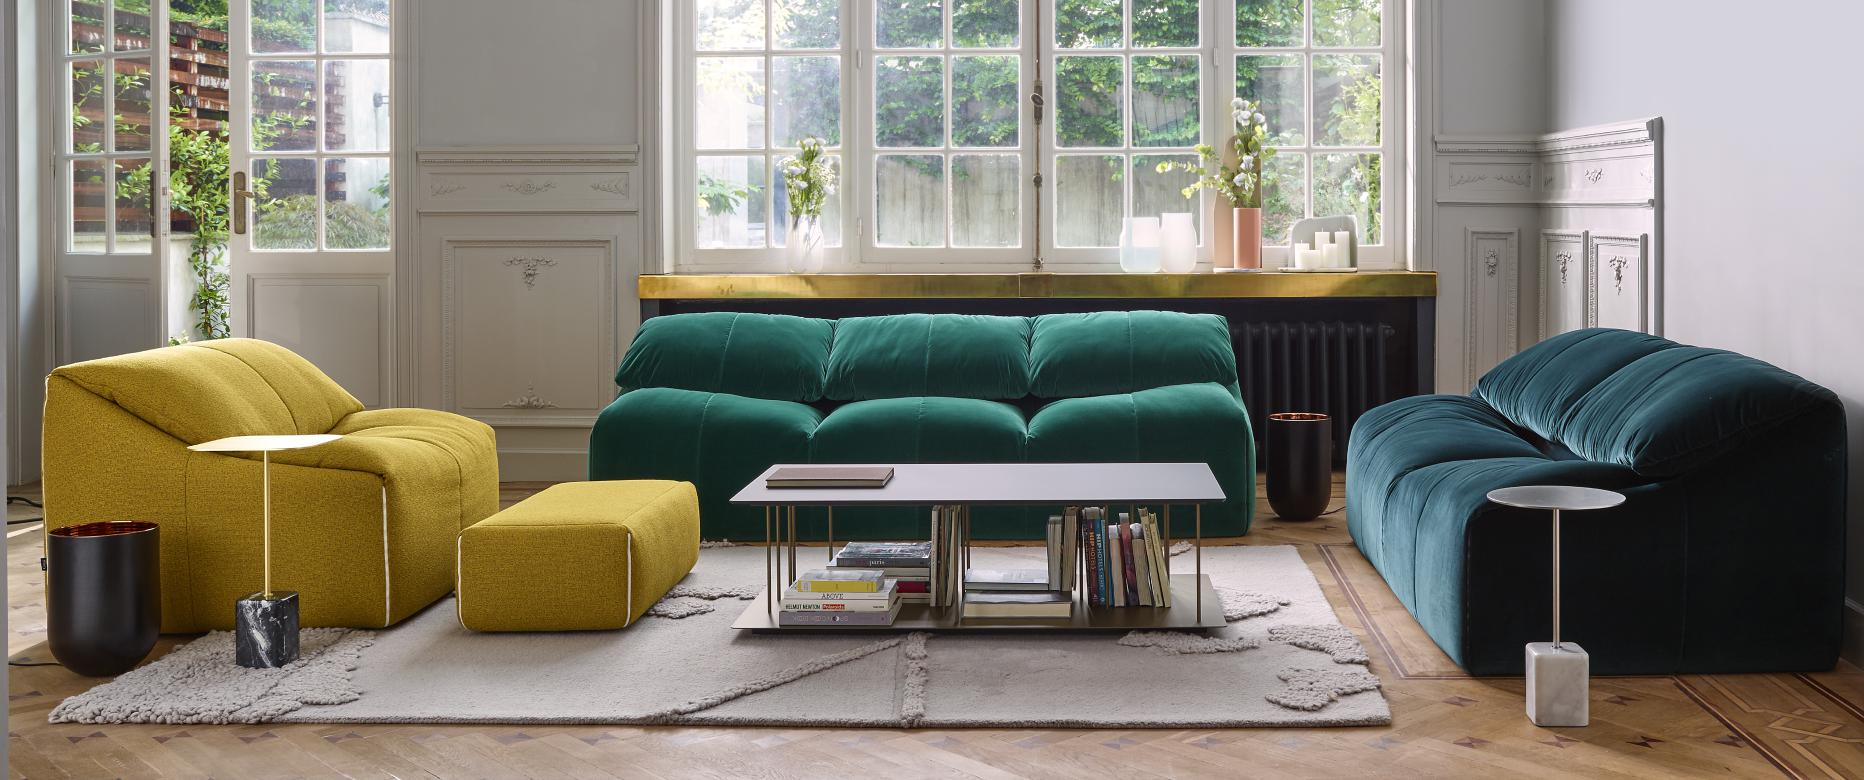 Contemporary furniture stores in chicago il - Ecommerce Ligne Roset Plumy Ligne Roset